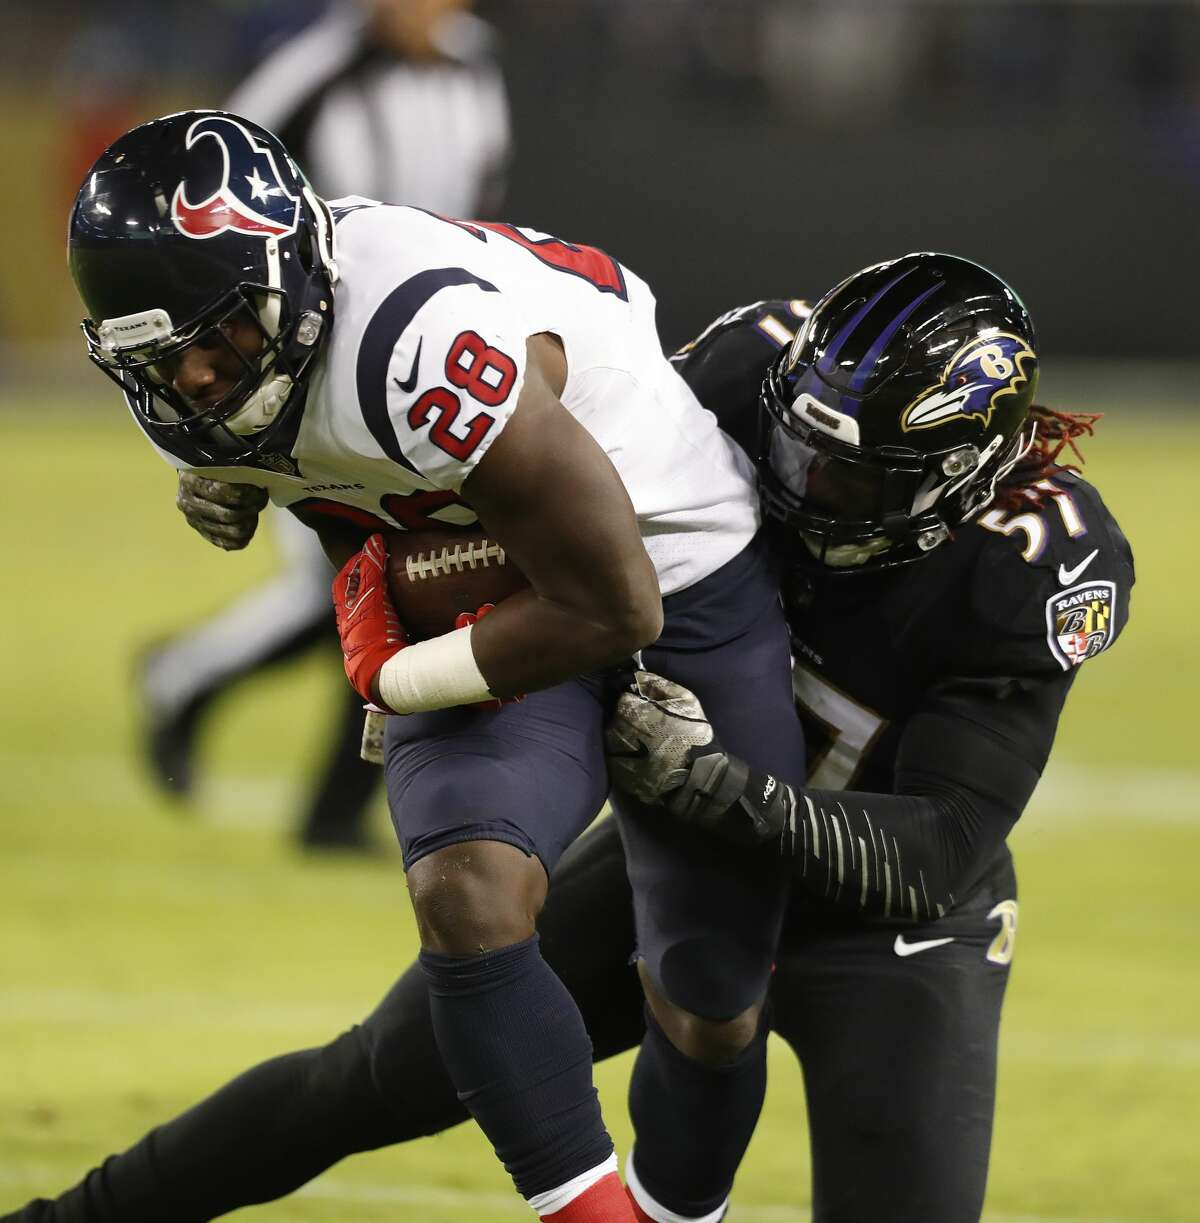 Texans running back Alfred Blue (28) remains in concussion protocol and is not likely to play Sunday against the 49ers.